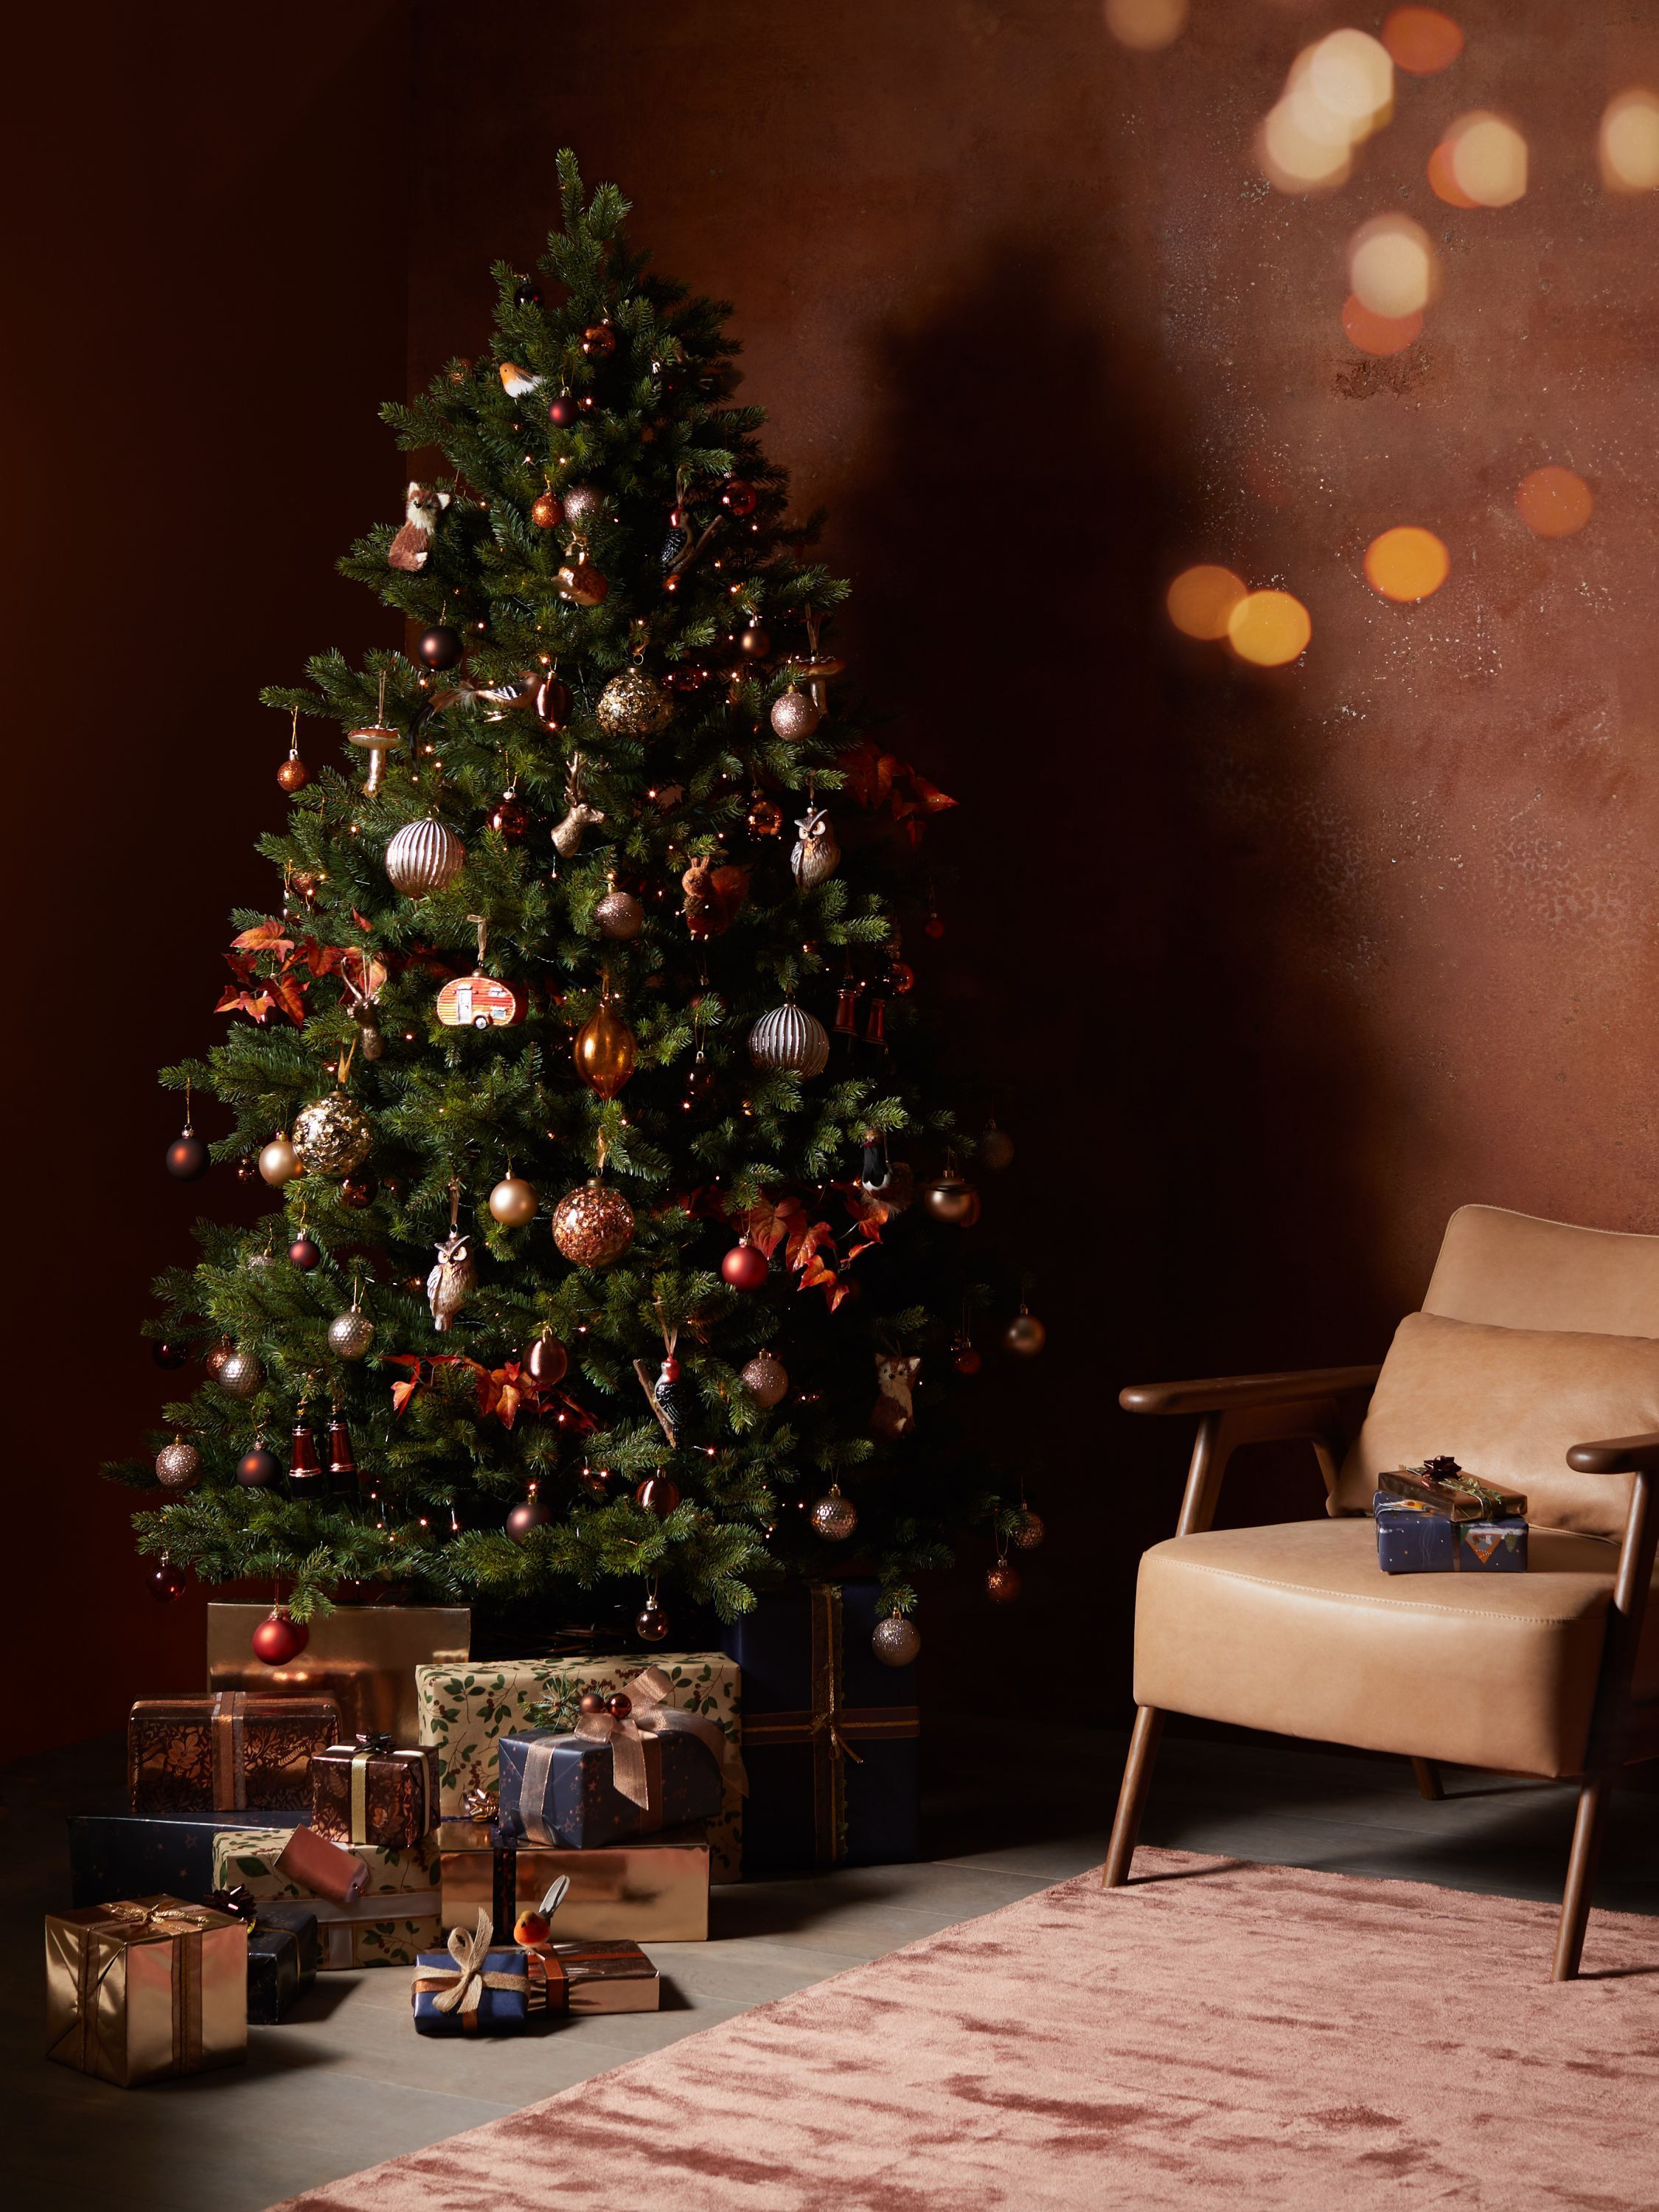 John Lewis Reveal 7 Christmas Decorating Trends For 2019 In 2020 Christmas Themes Decorations Amazing Christmas Trees John Lewis Christmas